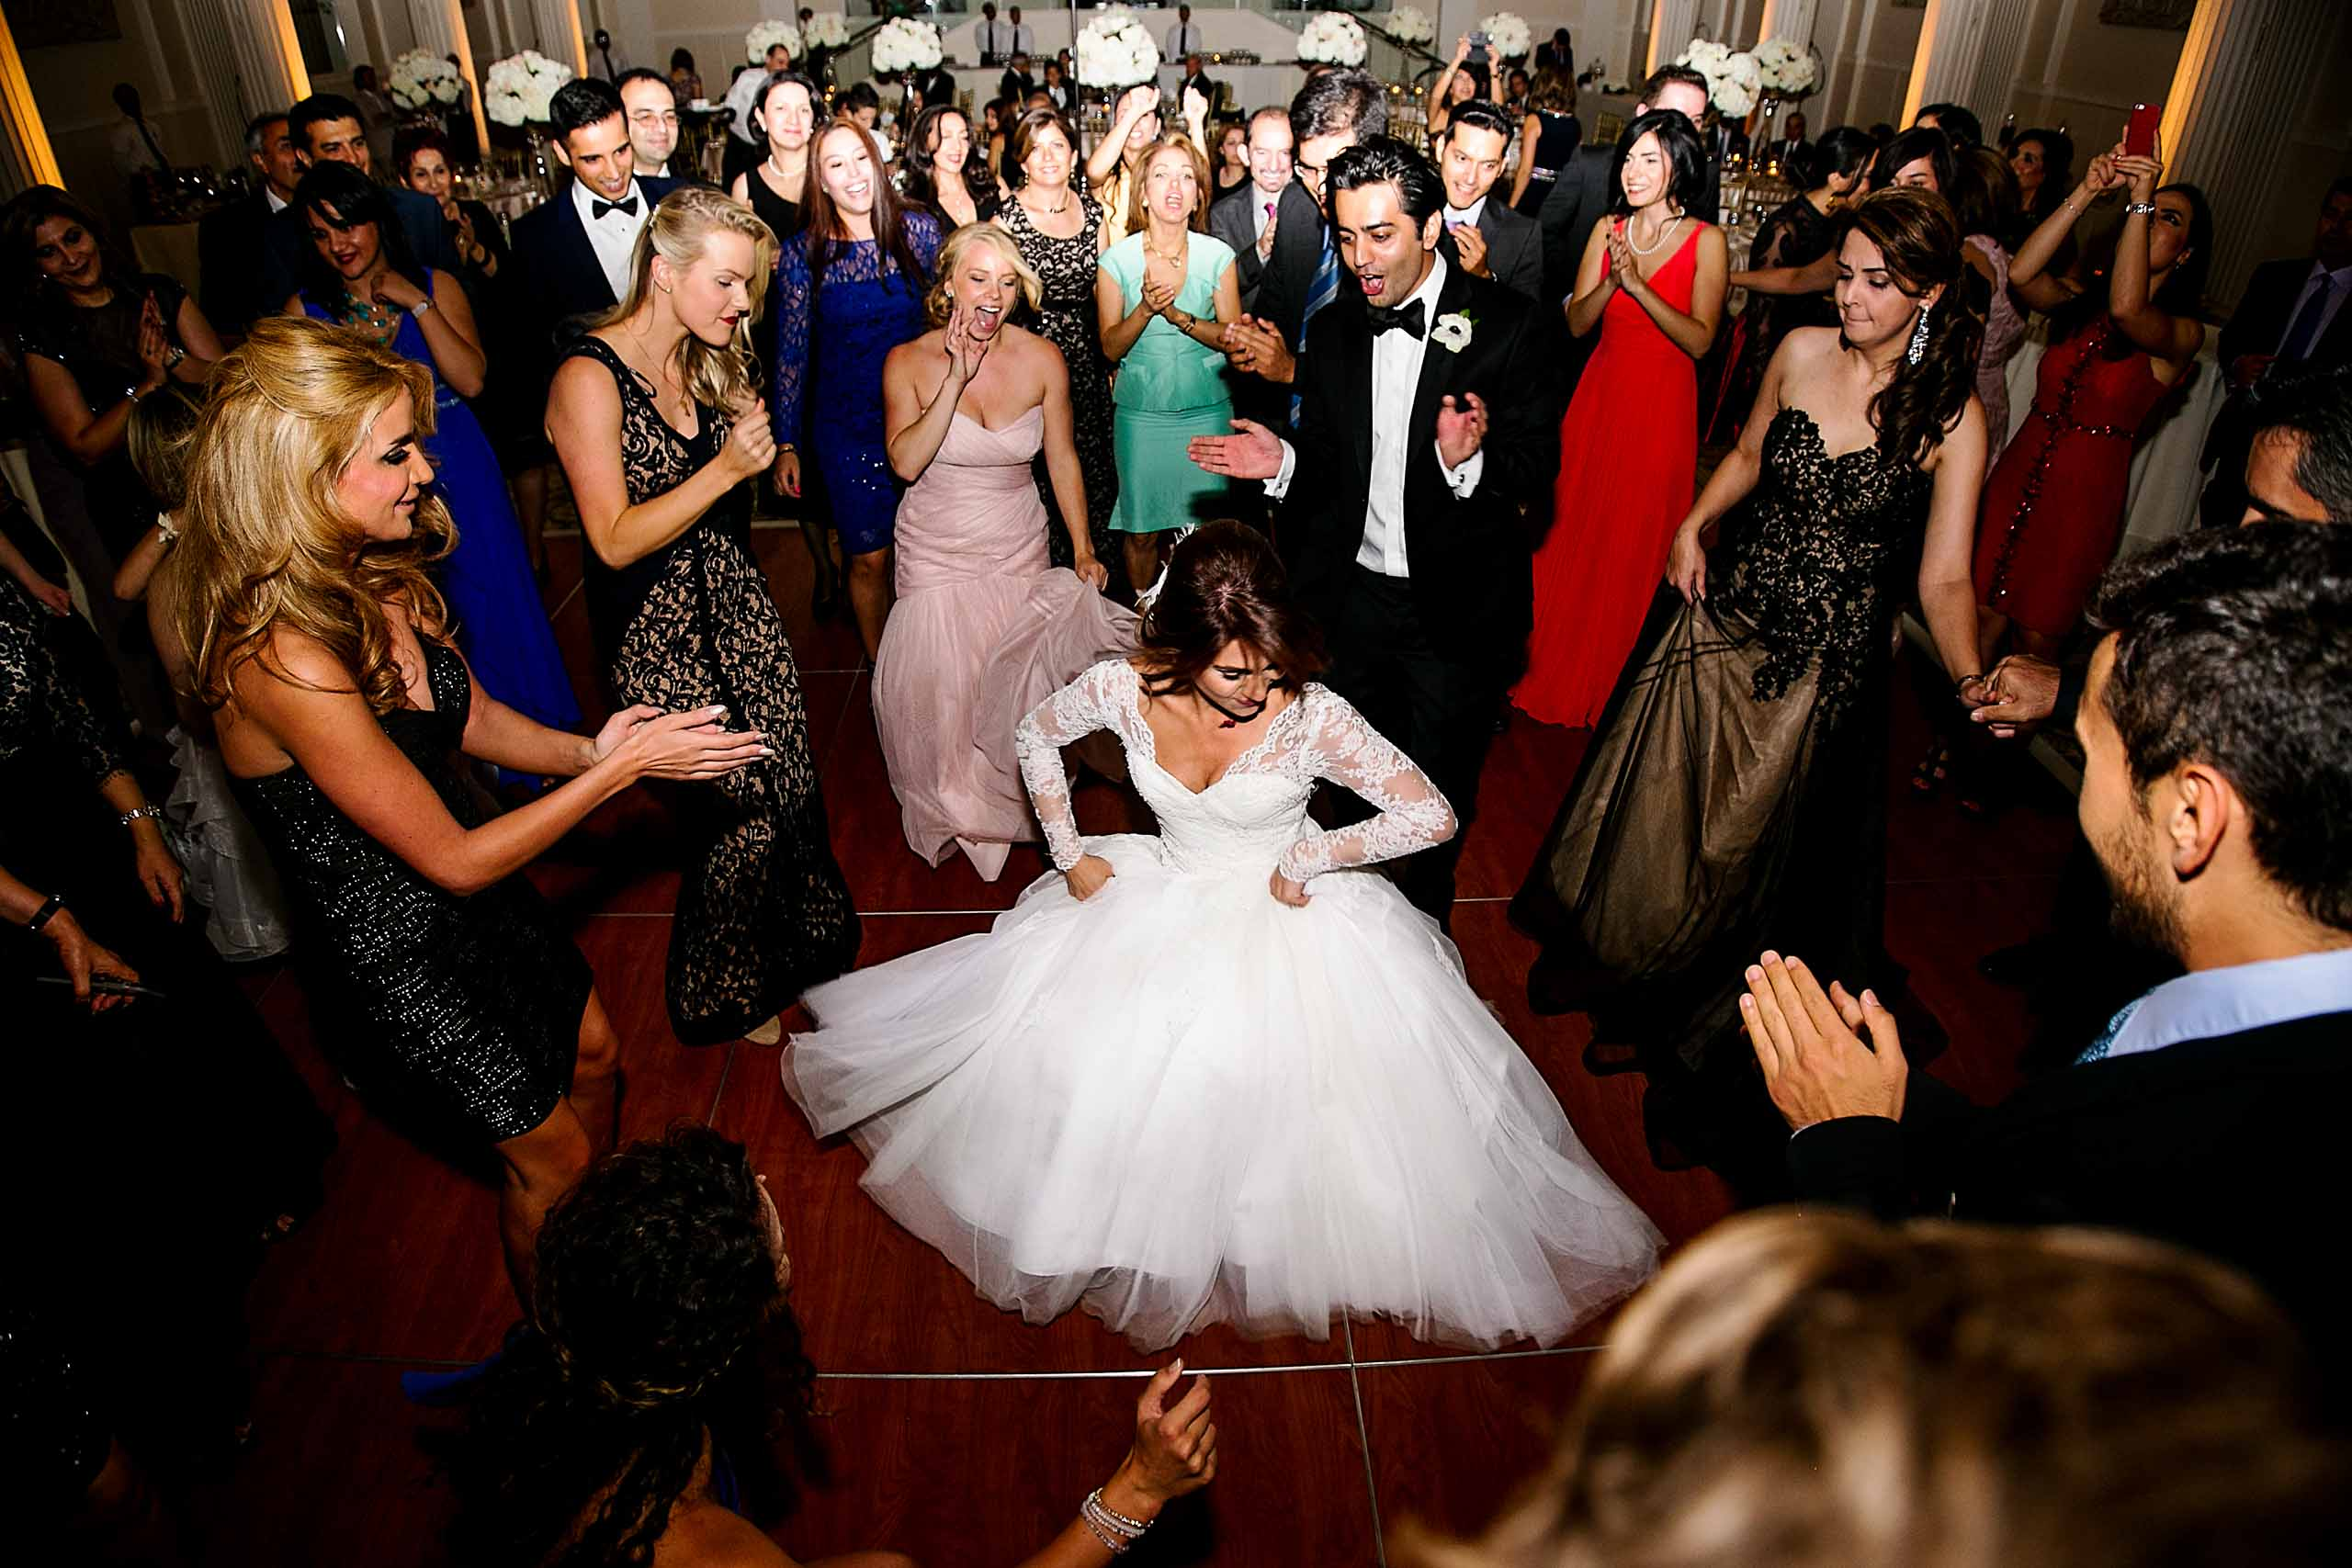 A fun and wild dance photo of a Persian bride dipping down low during a Portland Persian wedding at the Portland Art Museum reception